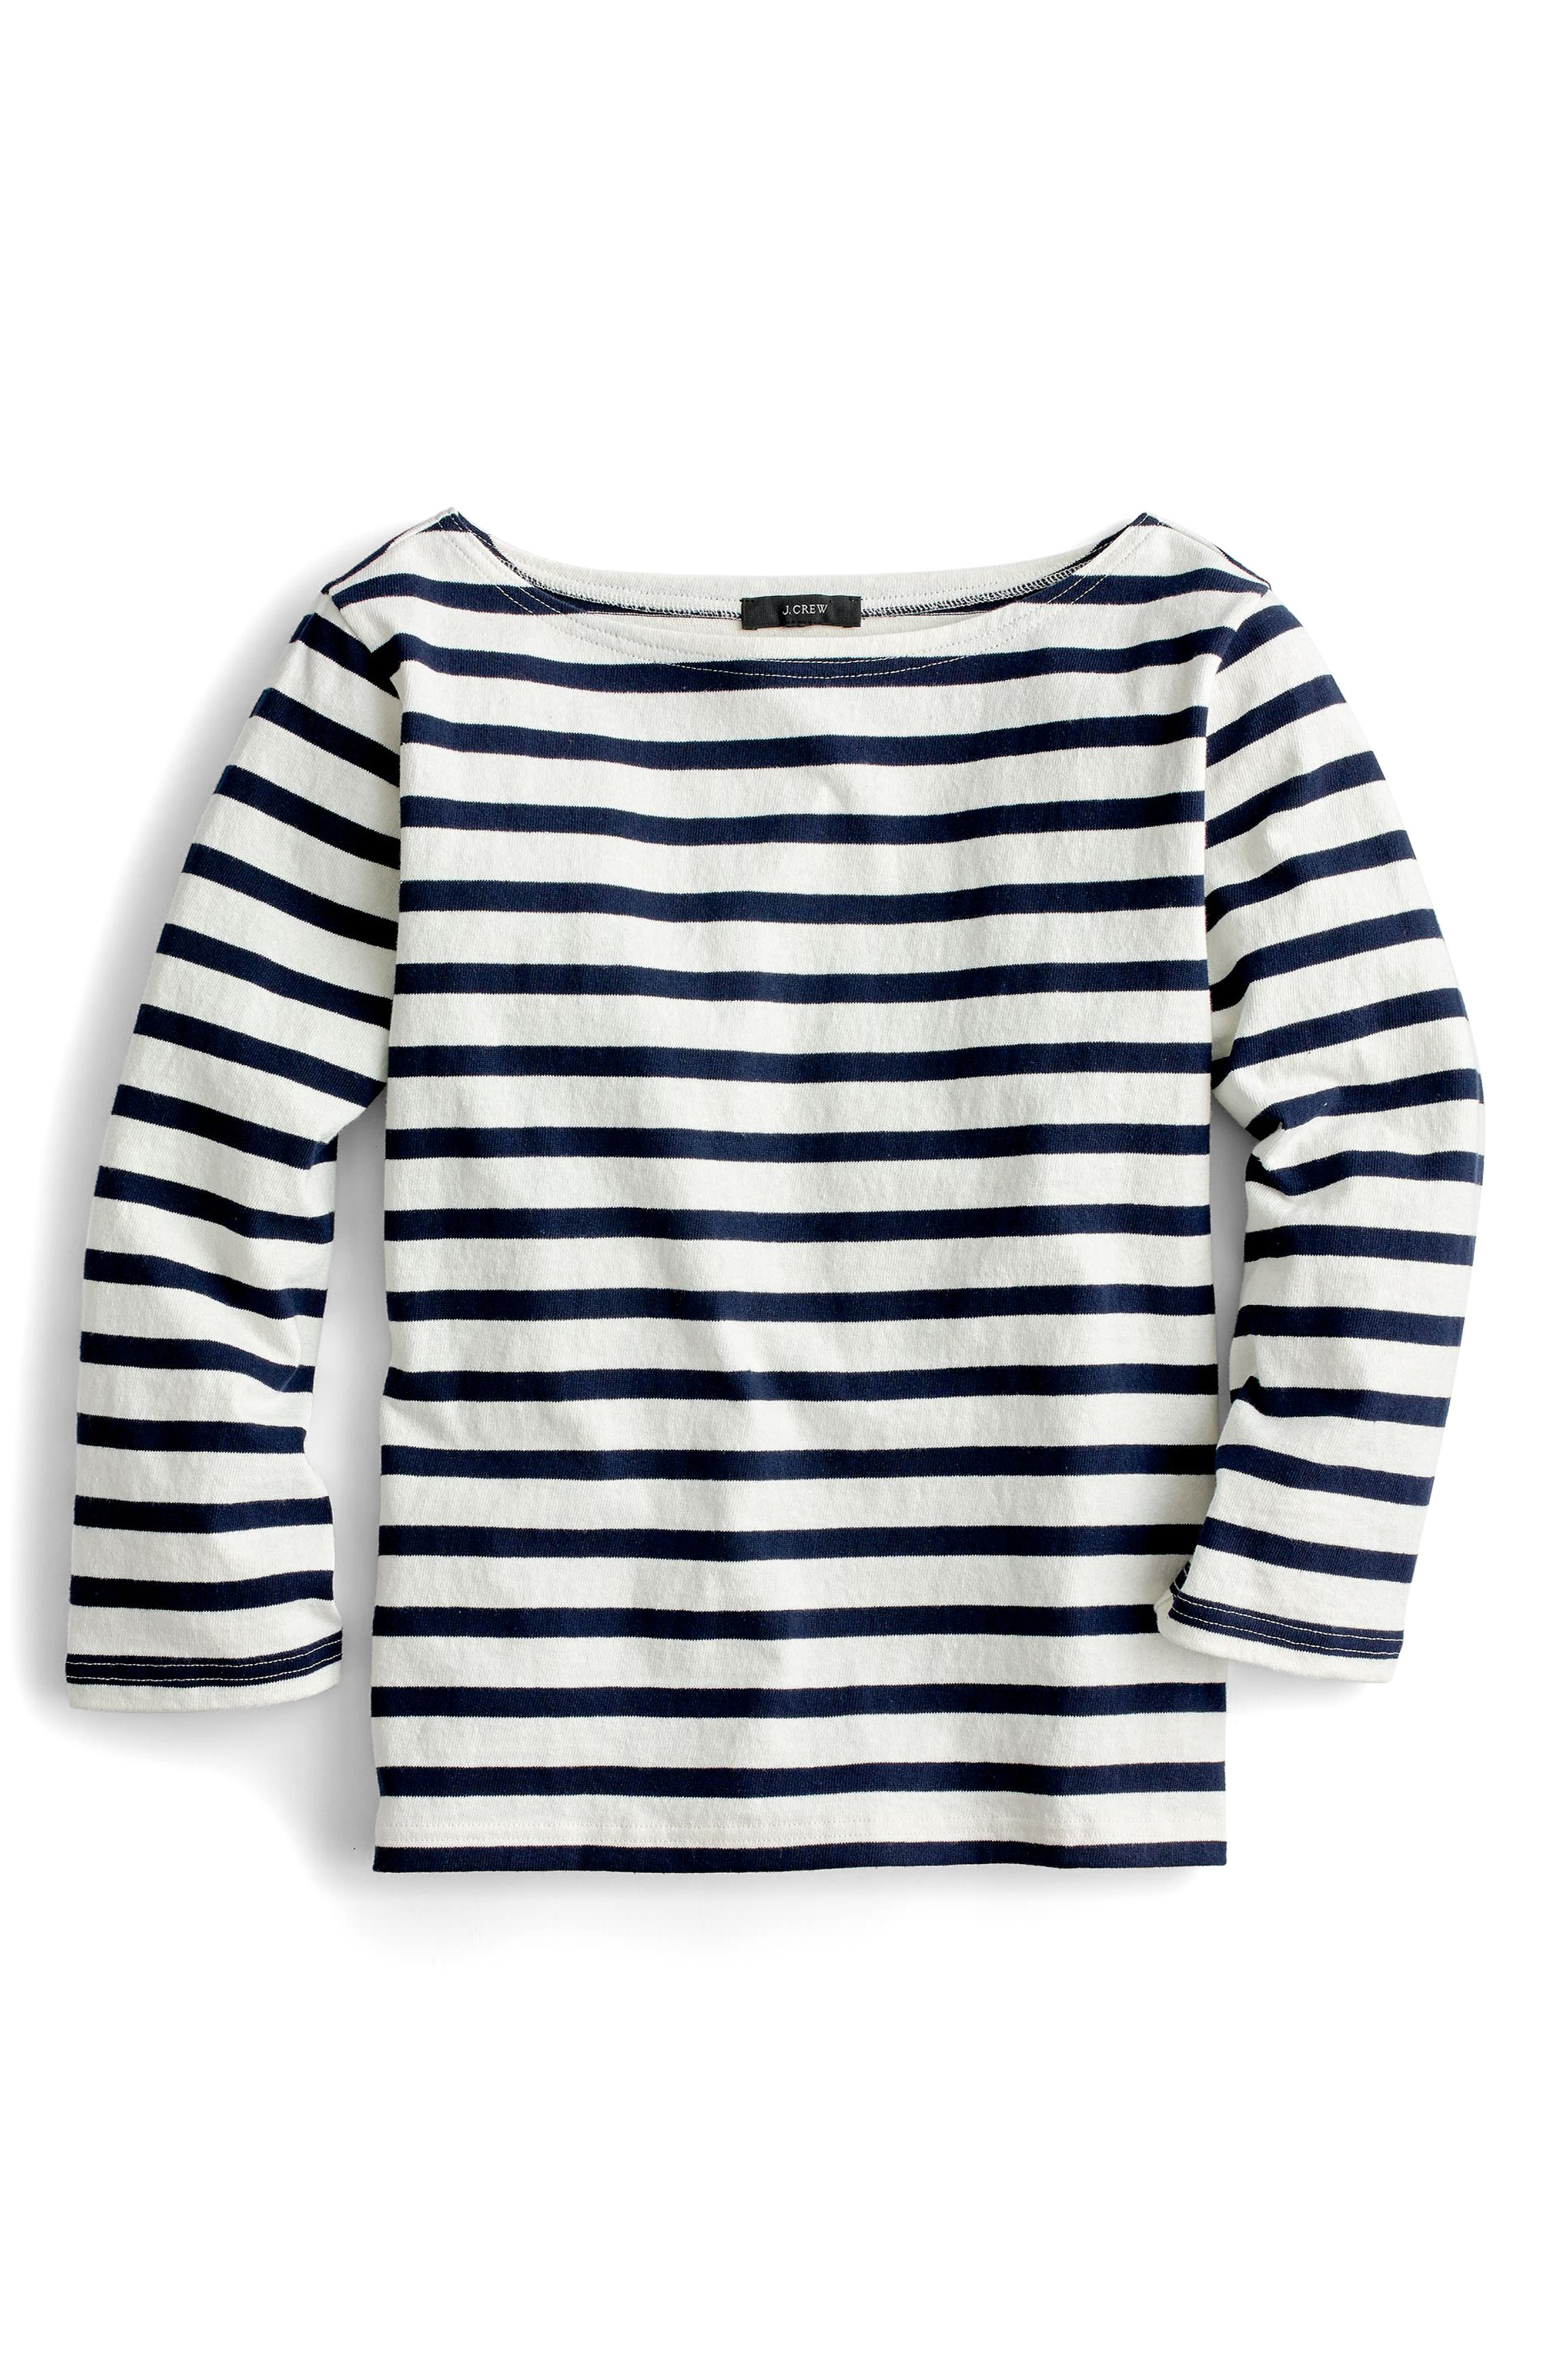 J.Crew Structured Stripe Tee,                             Alternate thumbnail 3, color,                             Ivory Navy